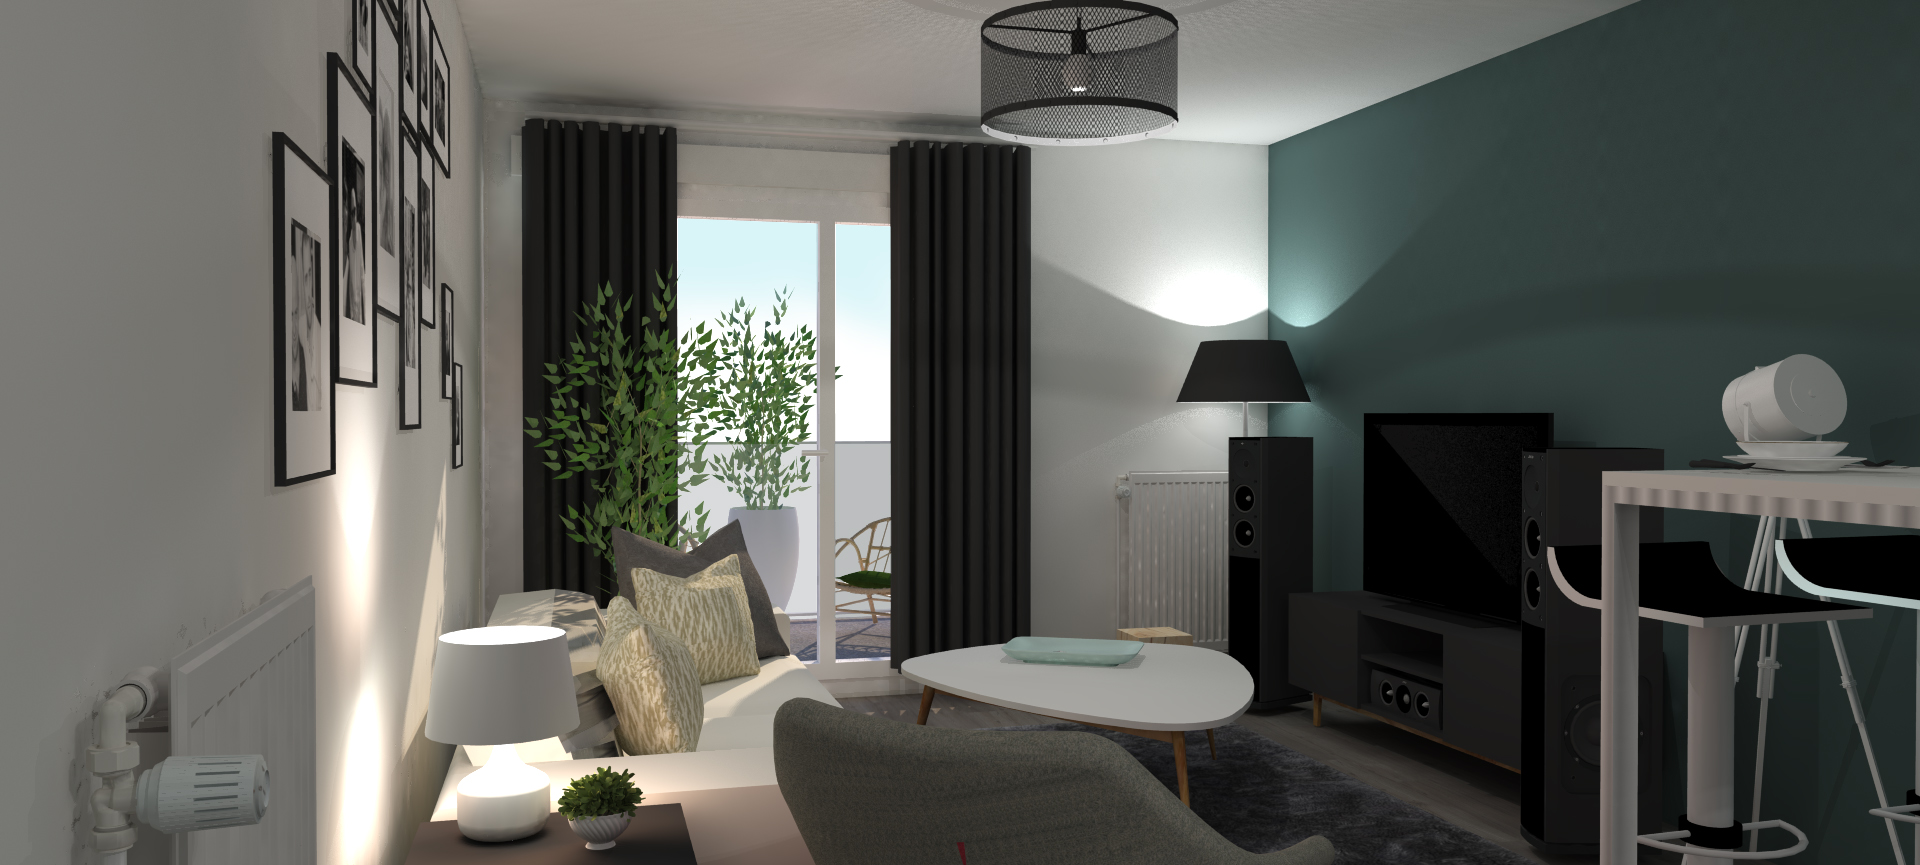 projet r novation am nagement d coration hem salon delfour charlotte. Black Bedroom Furniture Sets. Home Design Ideas